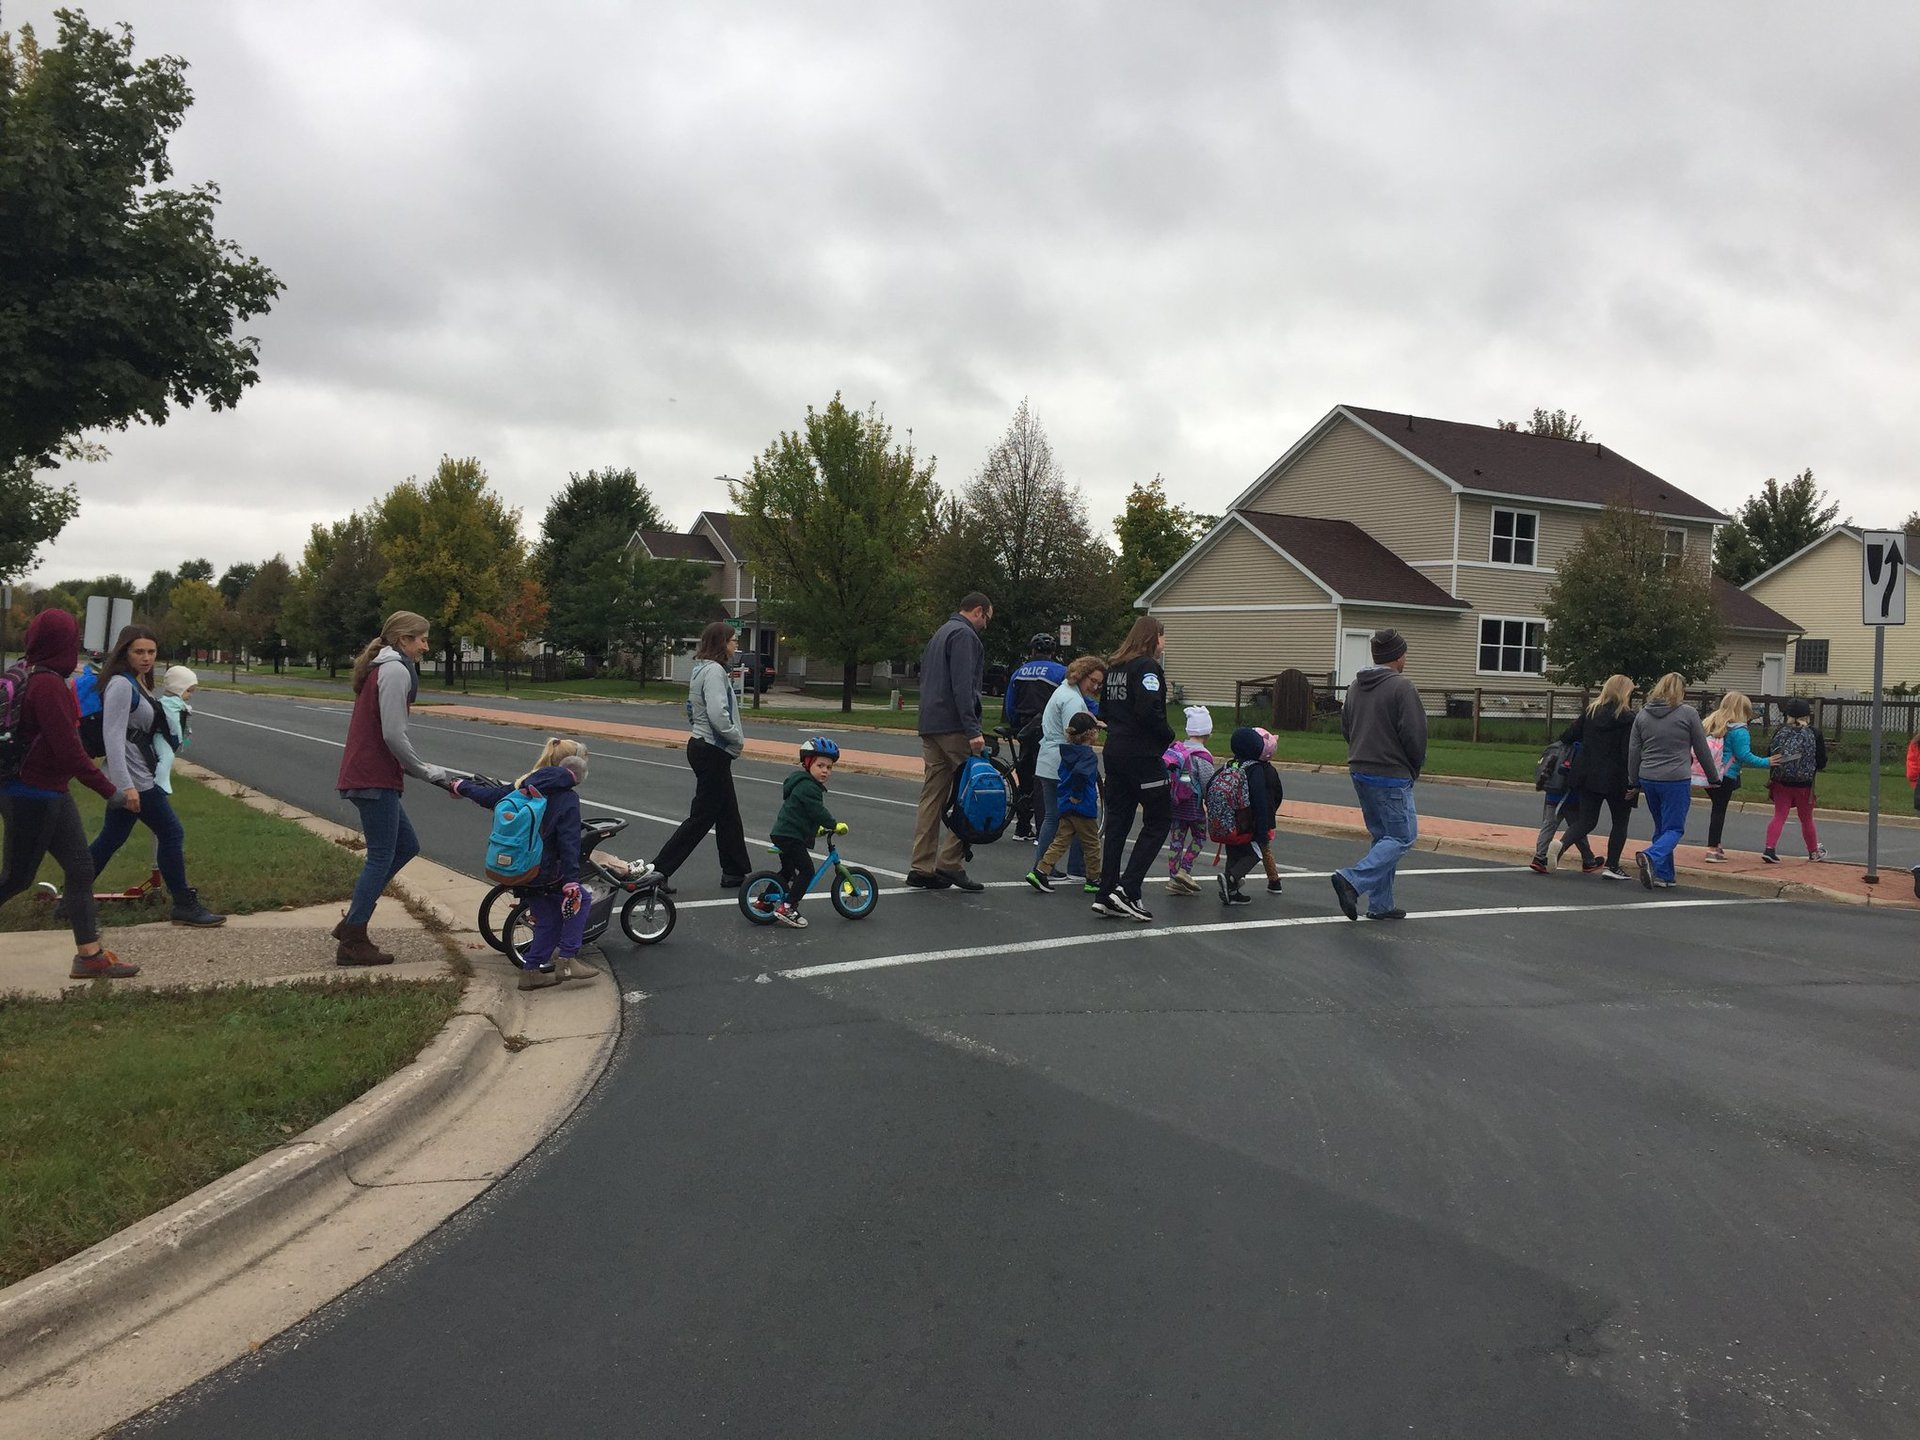 A group of students, and adults crosses the street in a crosswalk. Sone have bikes or strollers.